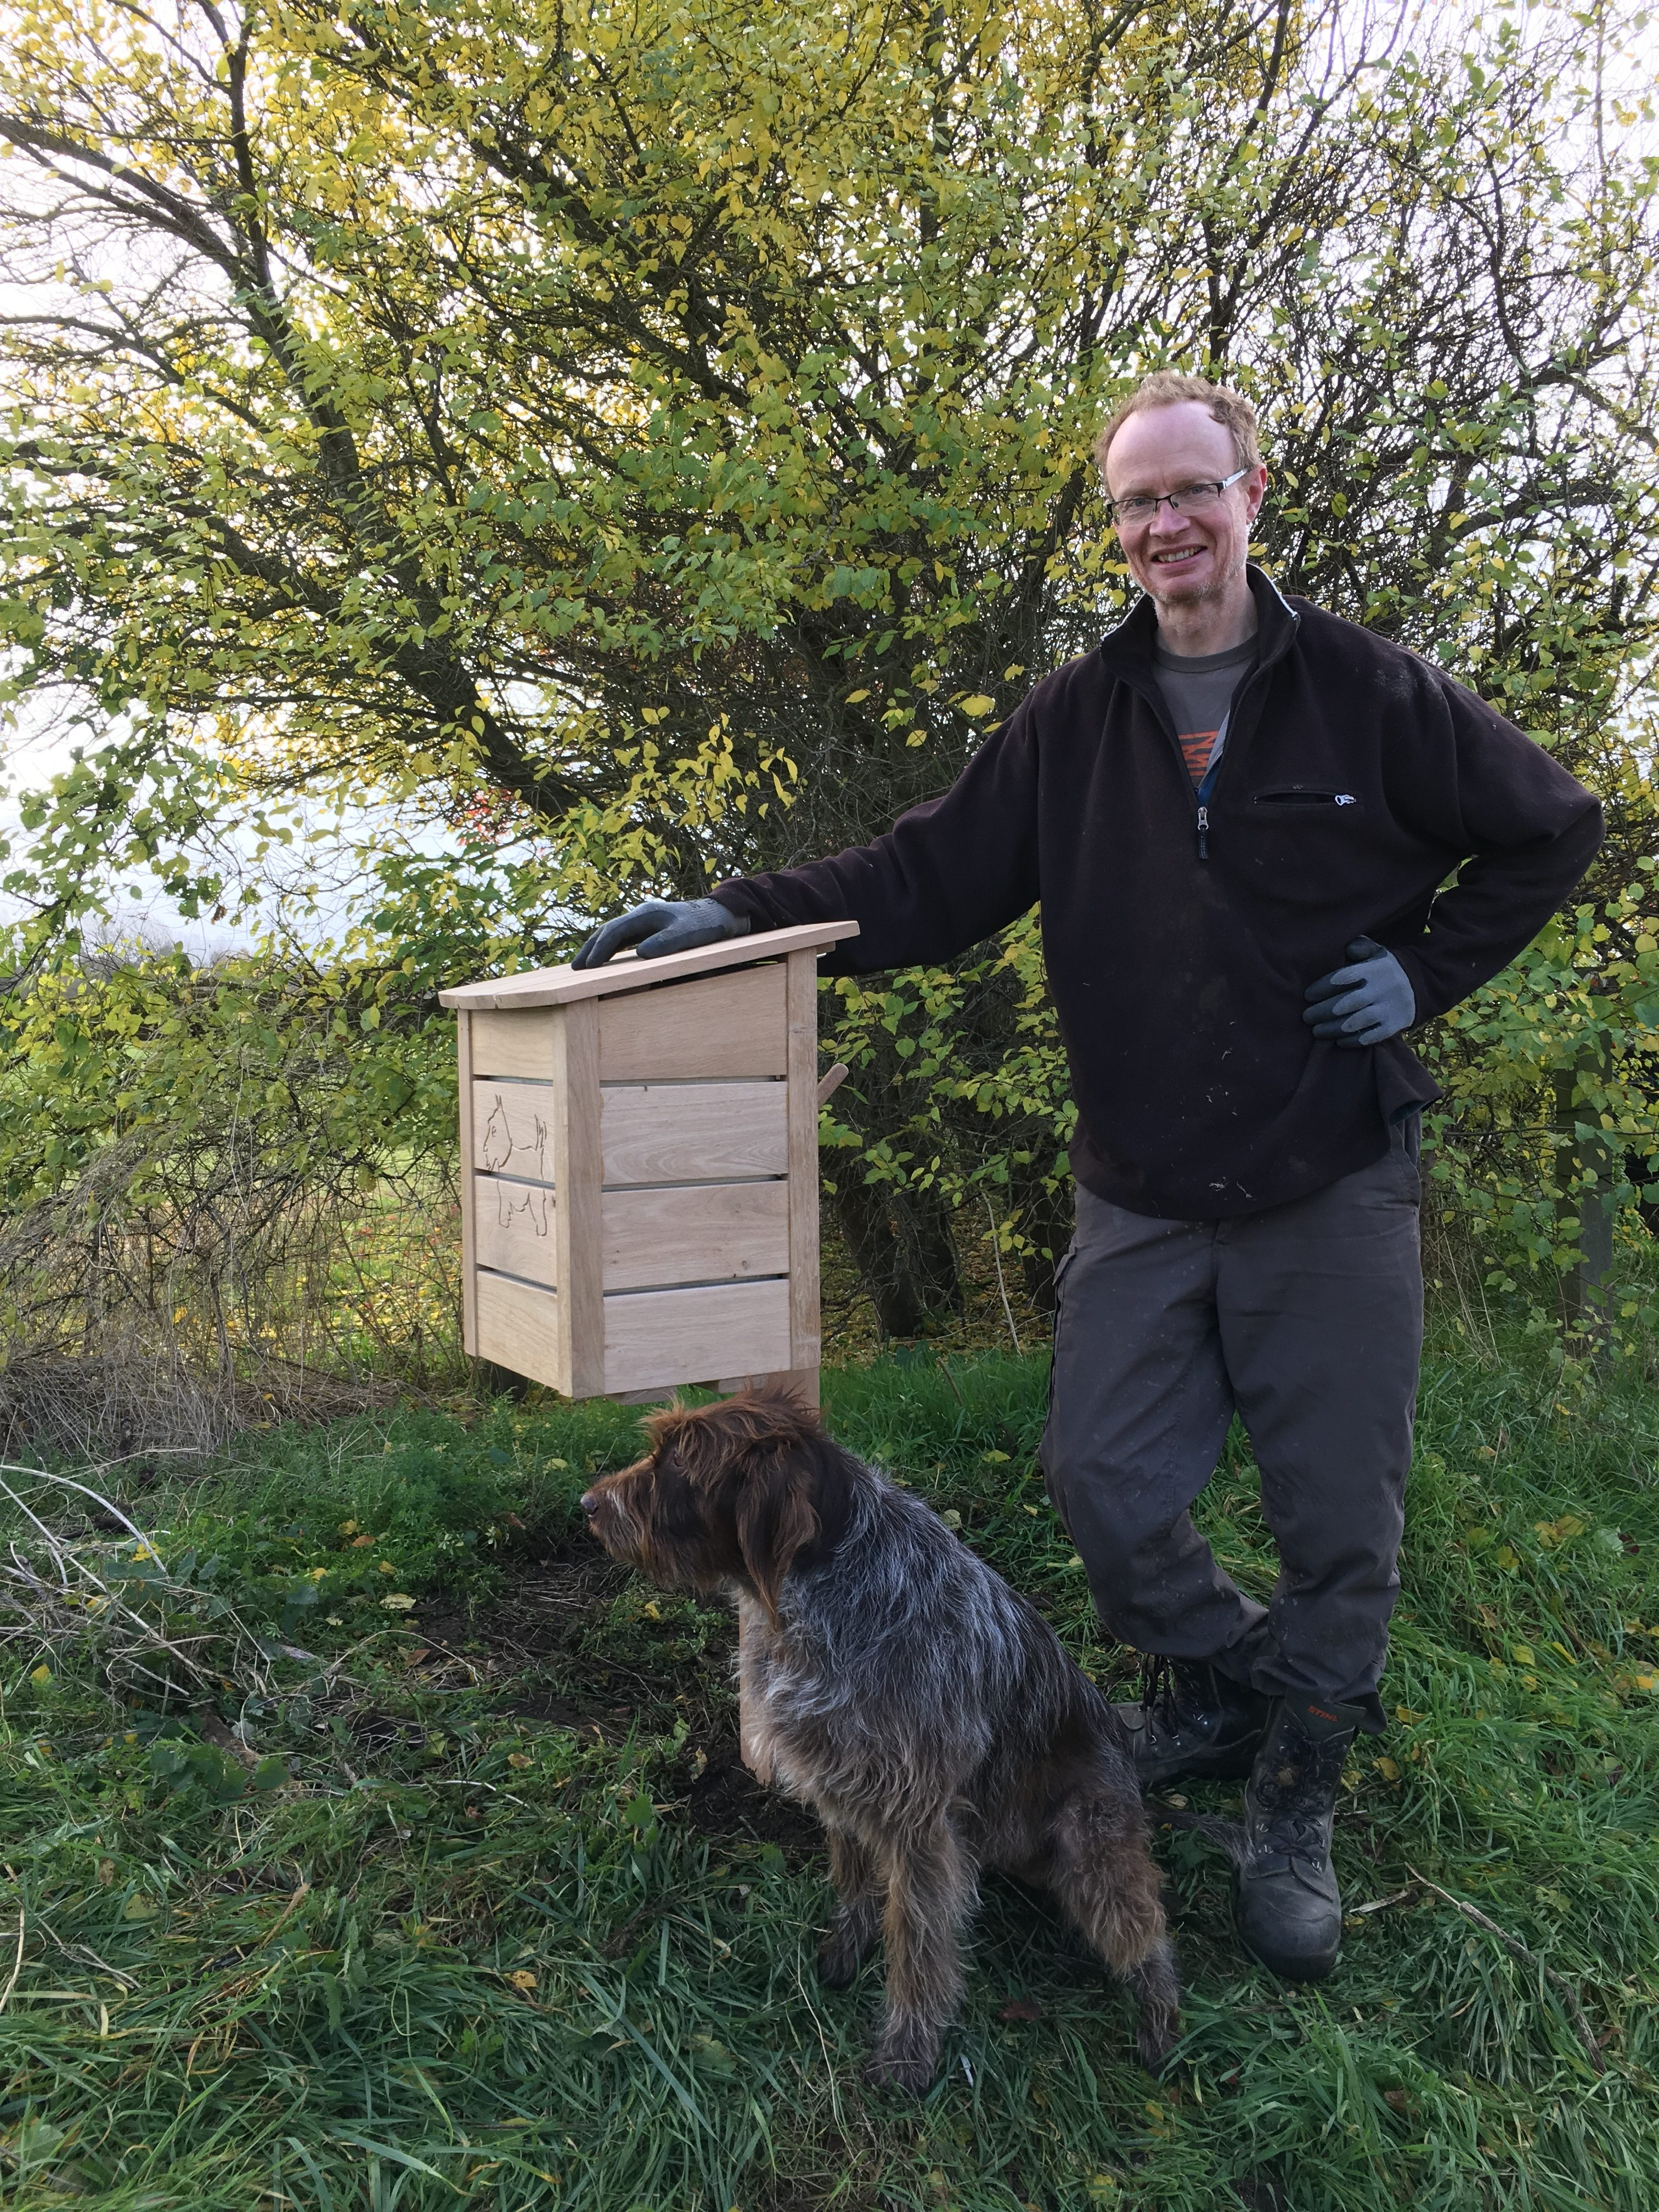 A superior dog poo bin, made by Rodas Irving (pictured) of Oxford Oak